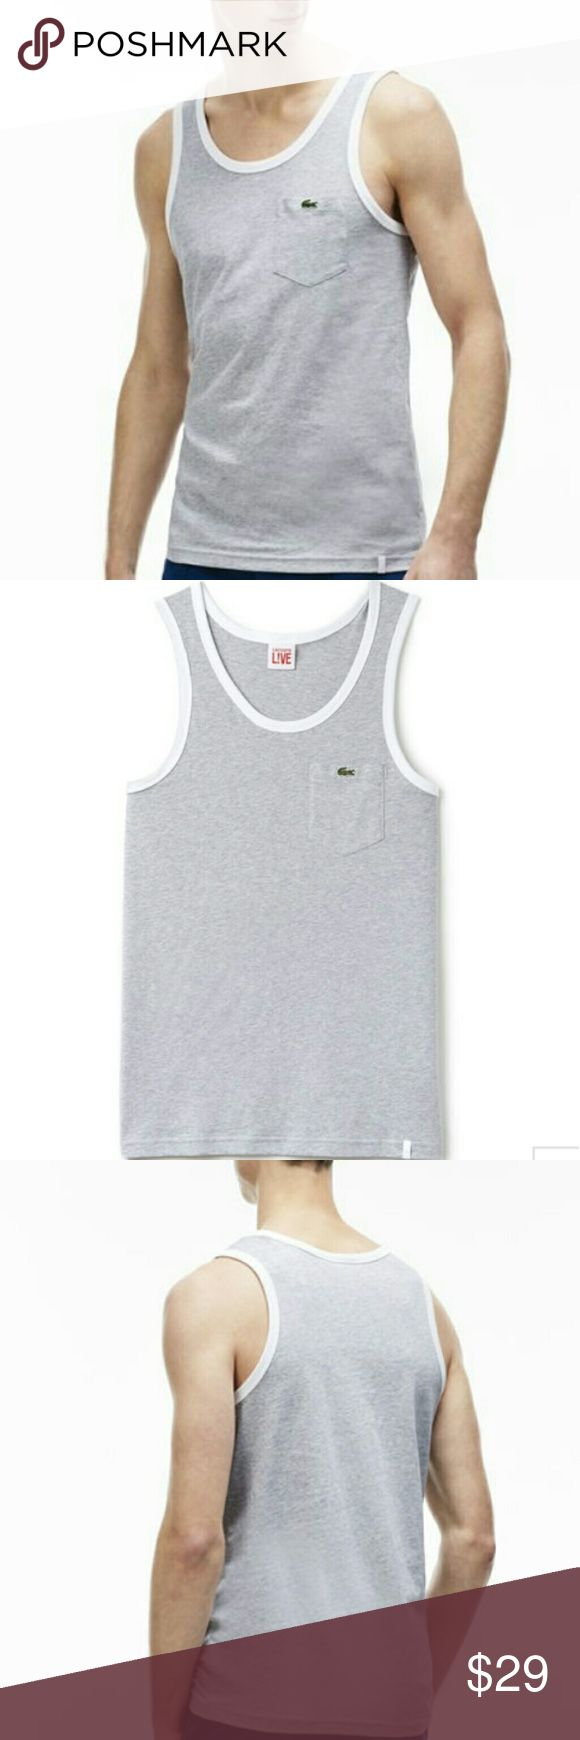 New Lacoste Live Pocketed Jersey Tank Top New Lacoste Live Pocketed Jersey Tank Top Lacoste Shirts Tank Tops